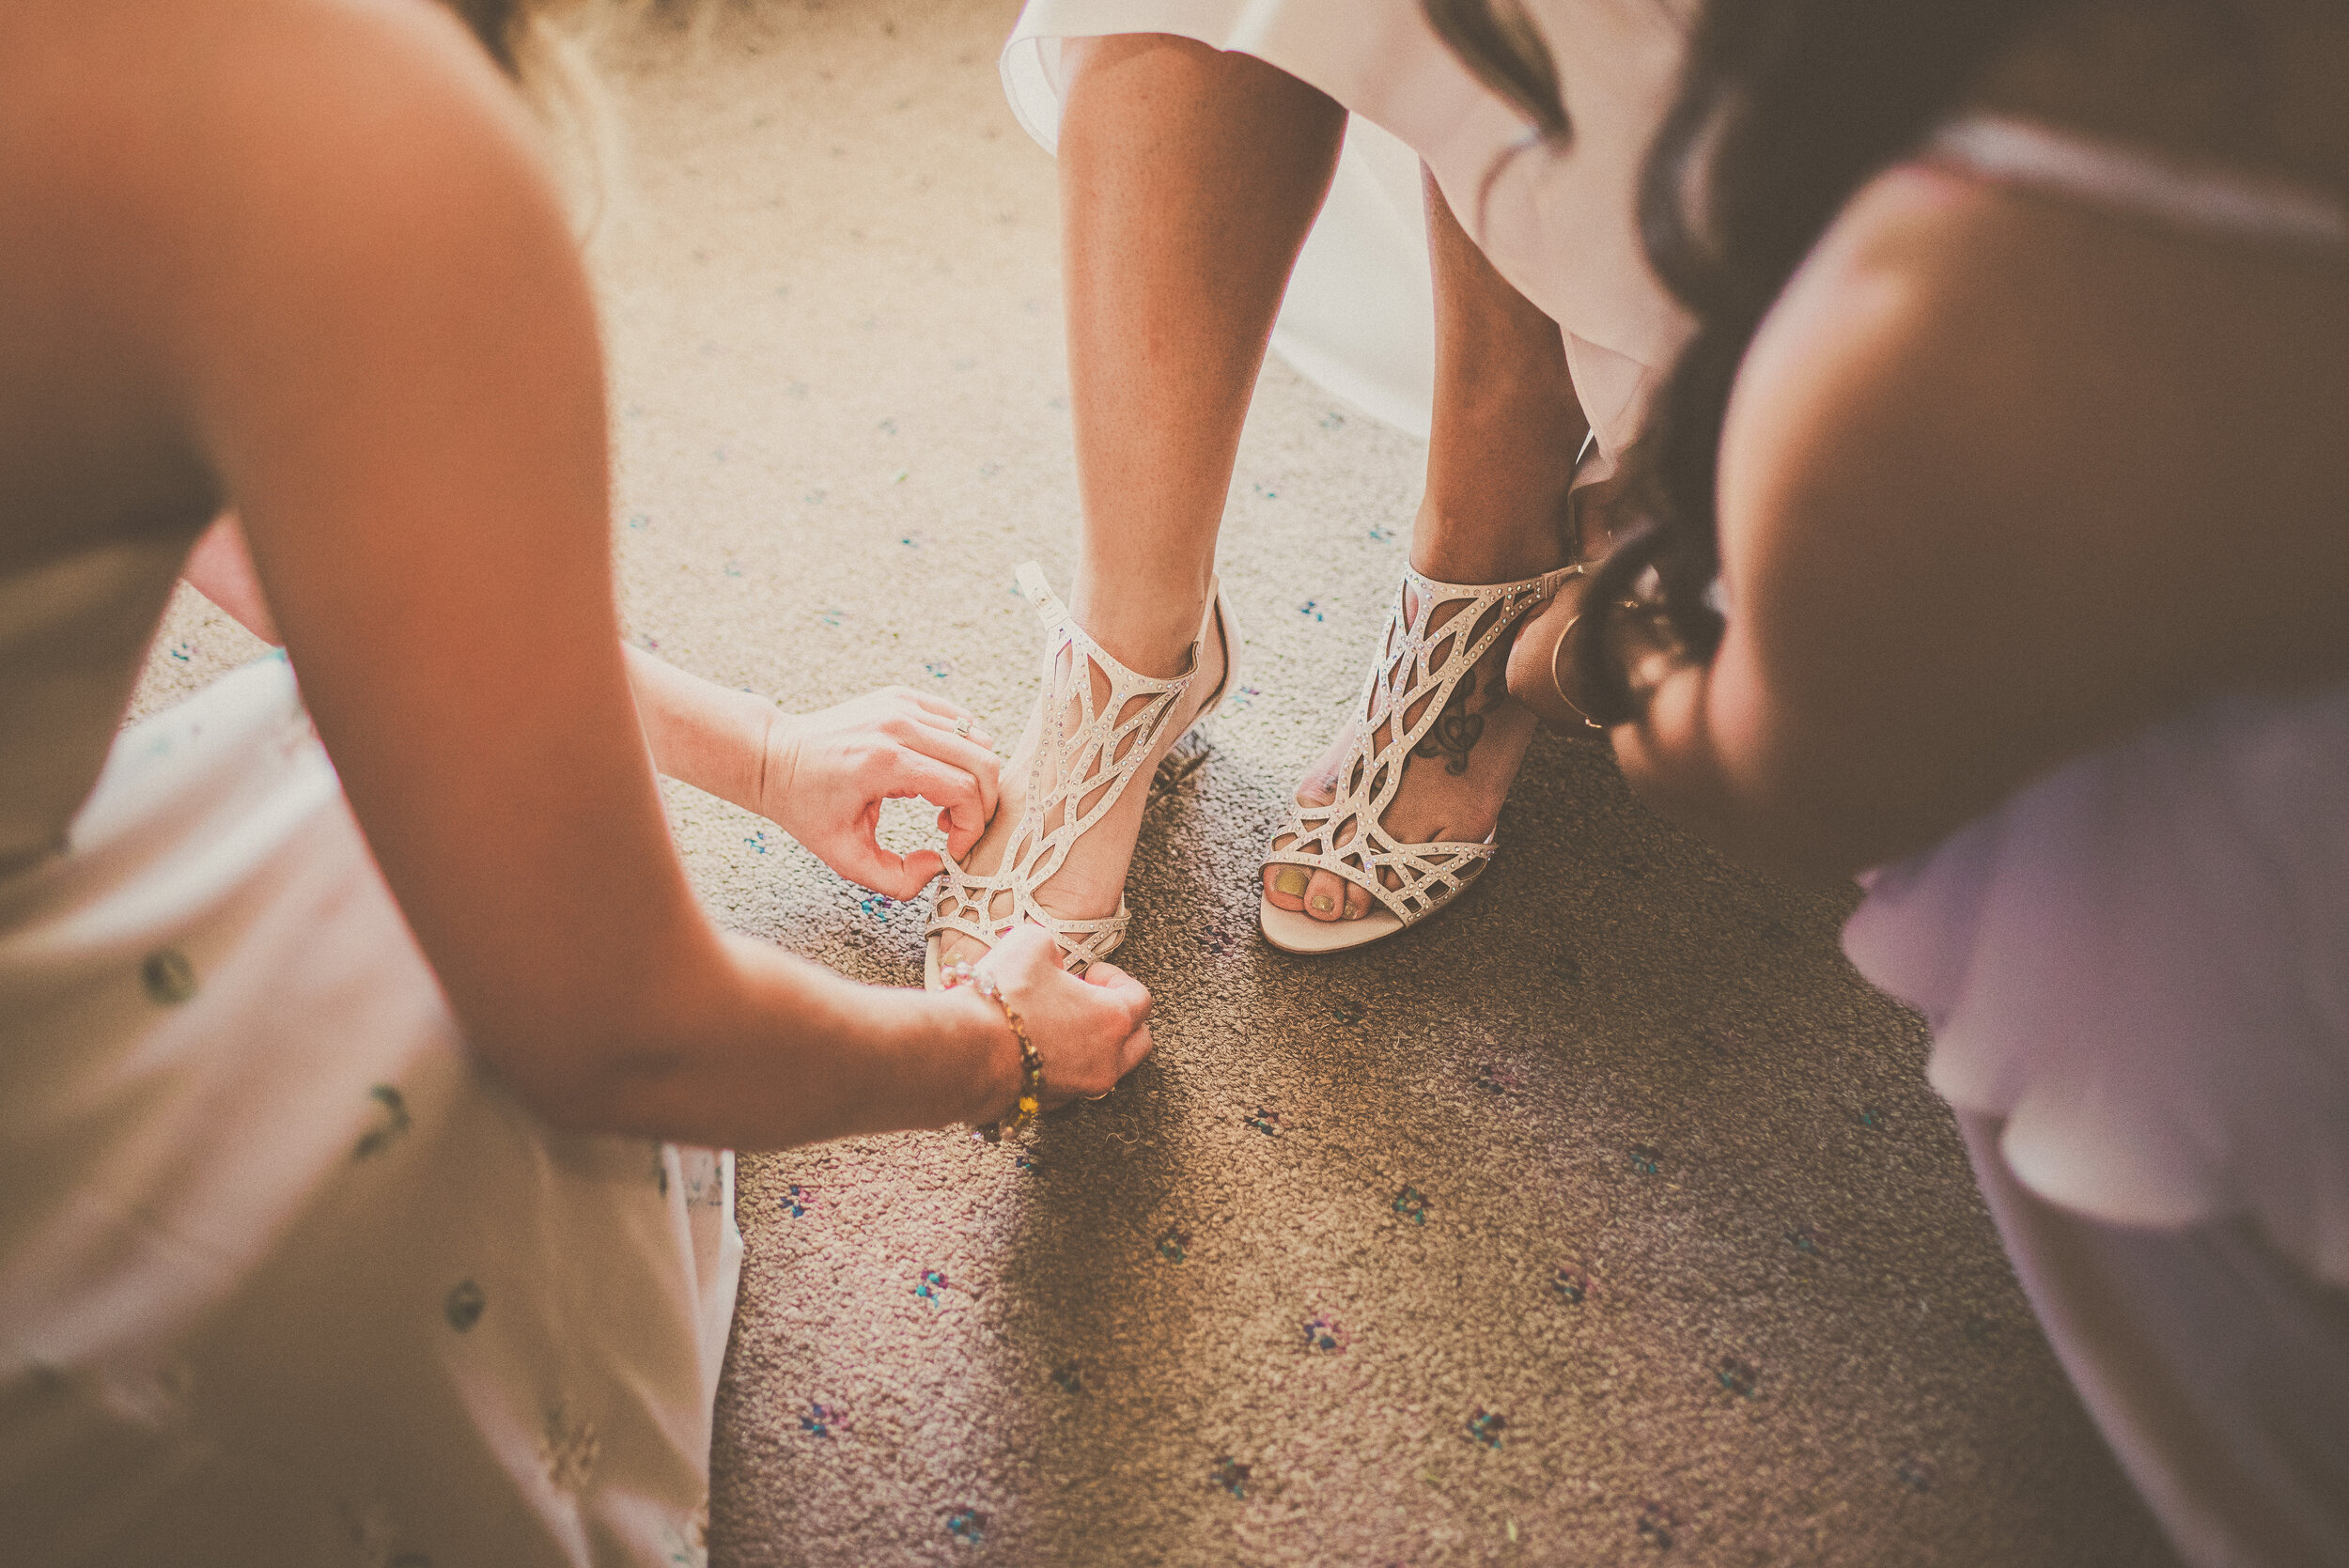 Motter Wedding - Getting Ready-40.jpg